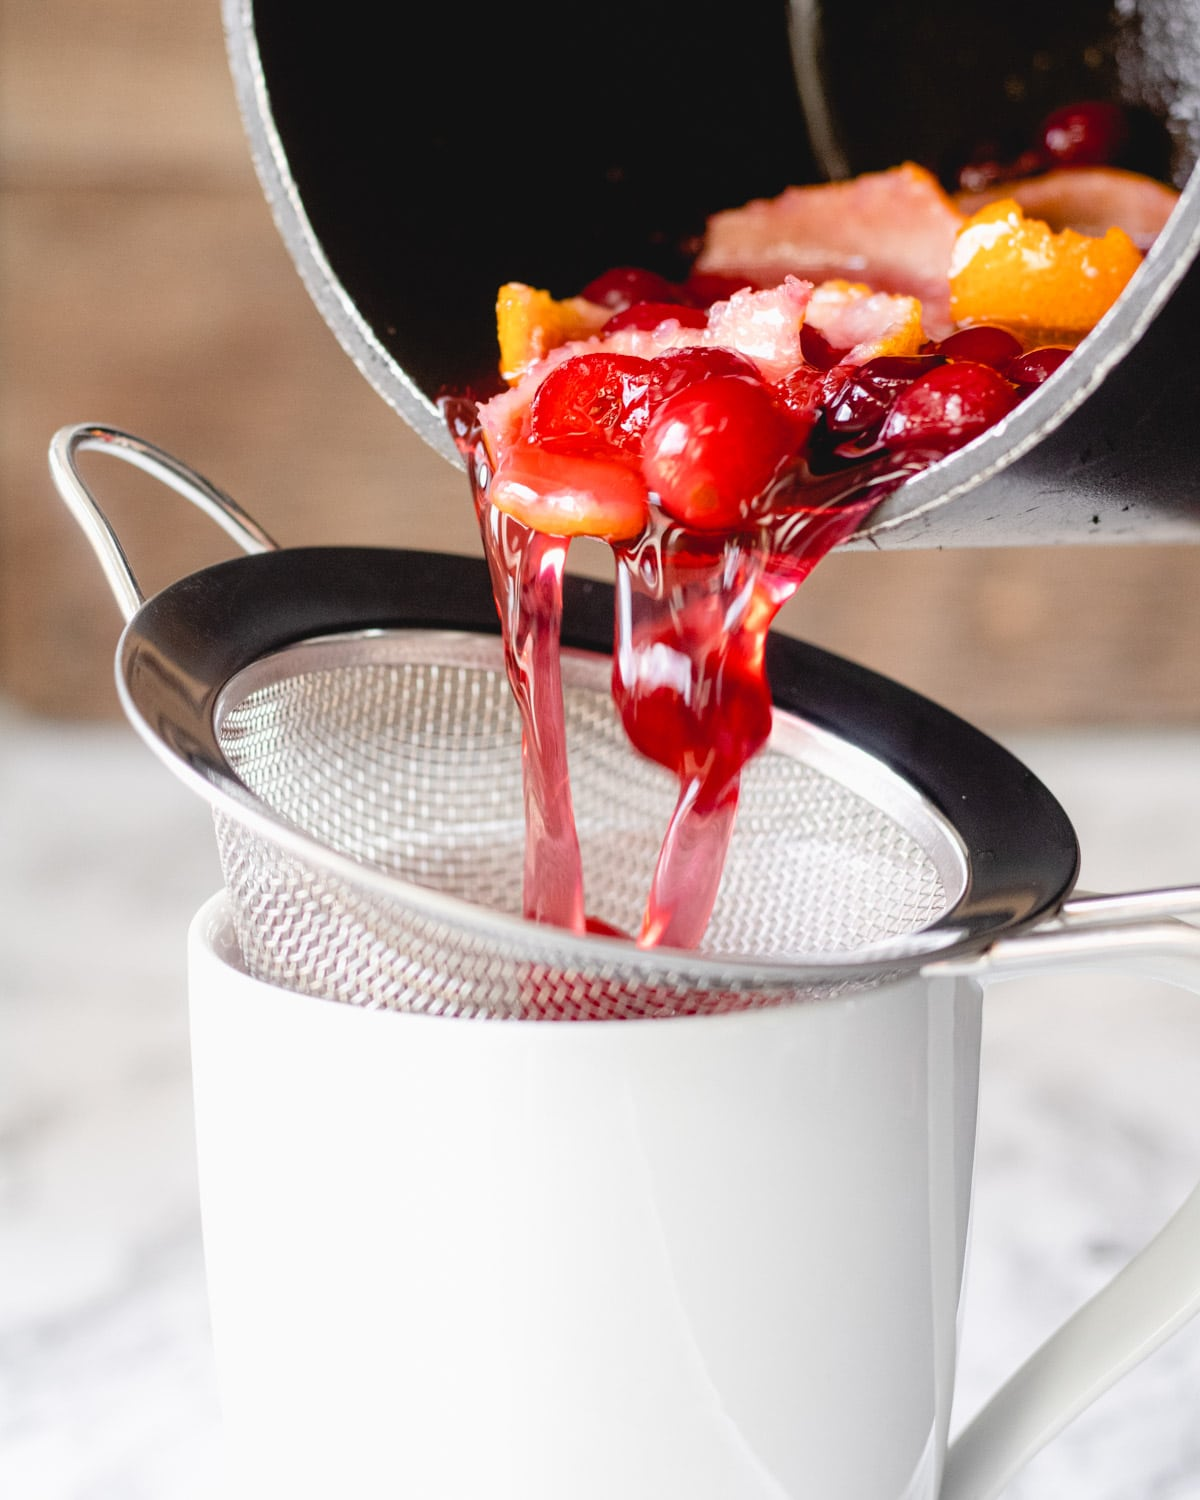 Cranberry simple syrup being poured through a strainer into a mug.